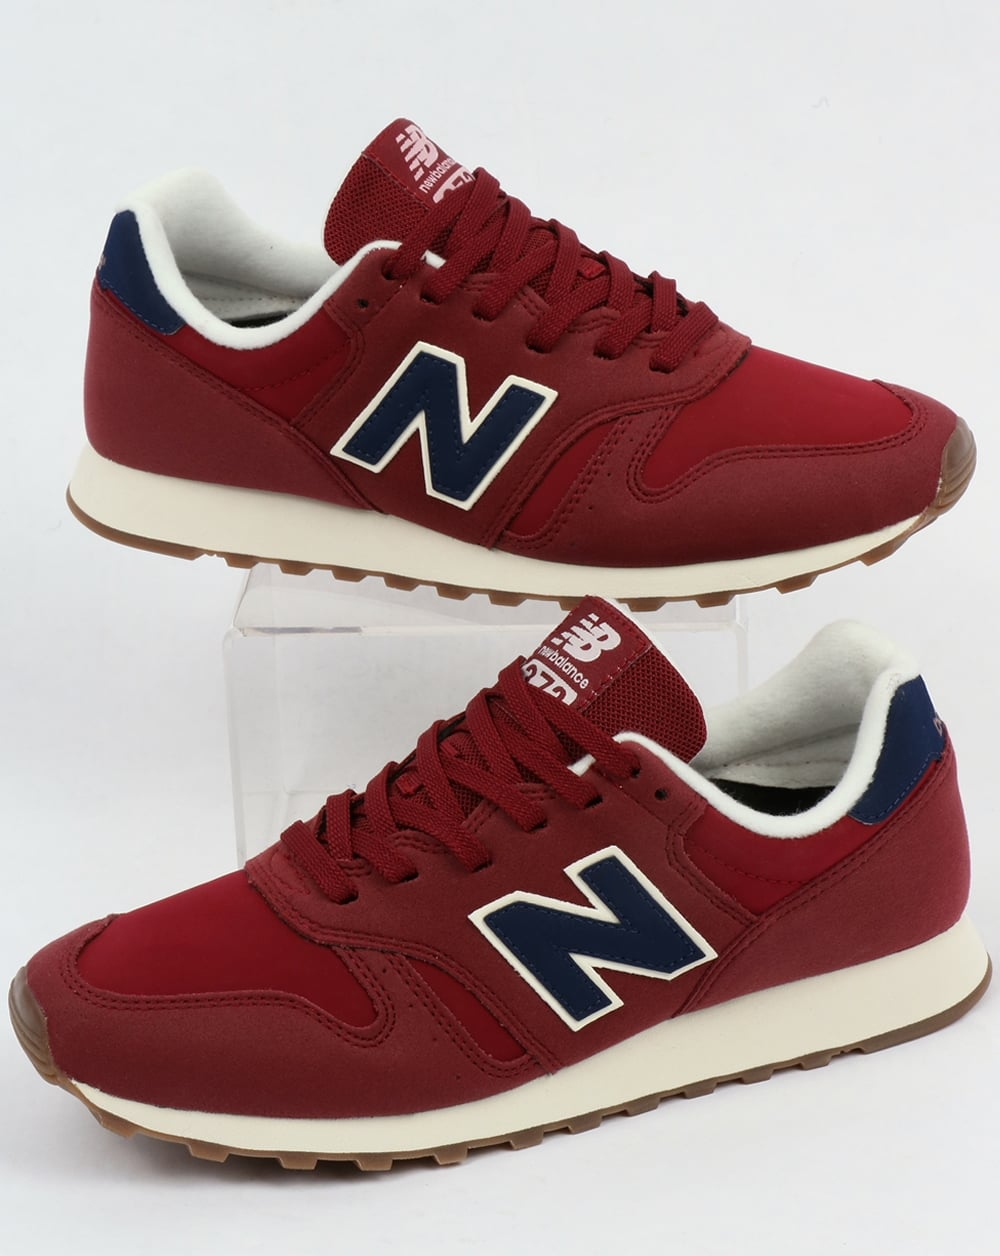 new balance 373 trainers red blue shoes running 70s. Black Bedroom Furniture Sets. Home Design Ideas